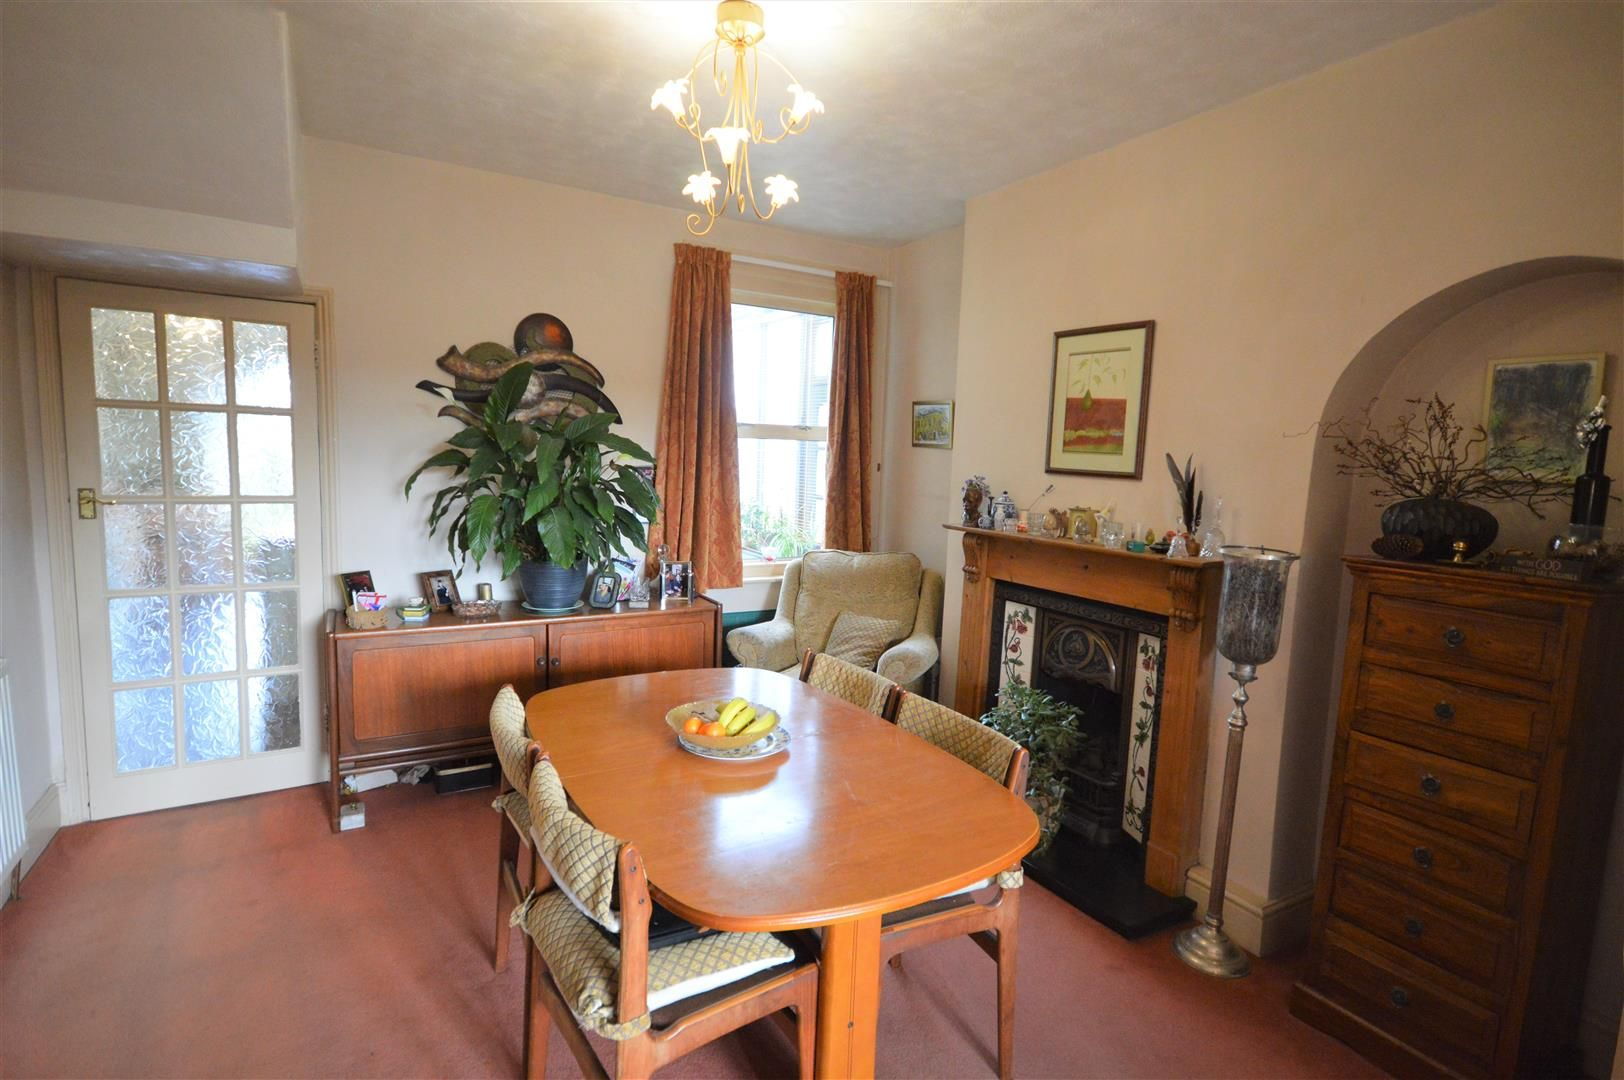 3 bed end of terrace for sale in Leominster 4